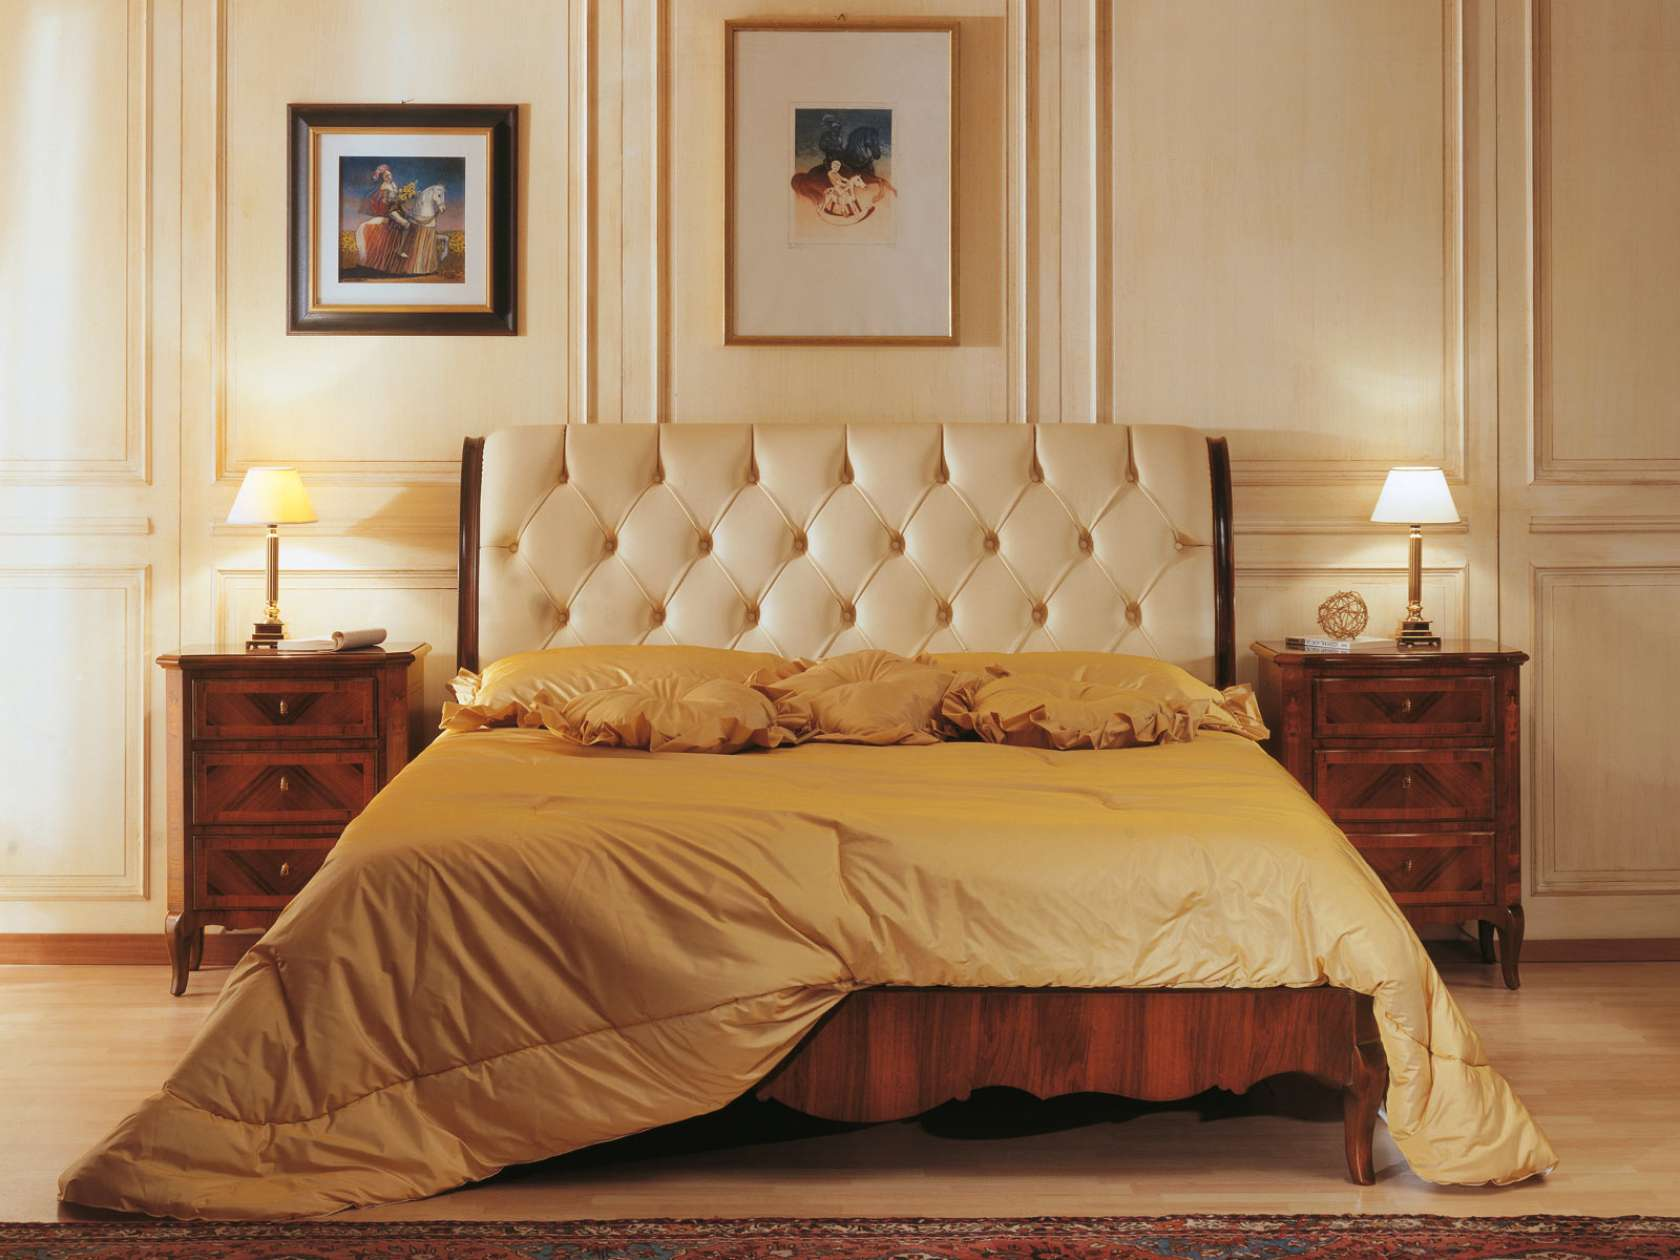 Classic luxury 19th century french bedroom, bed in